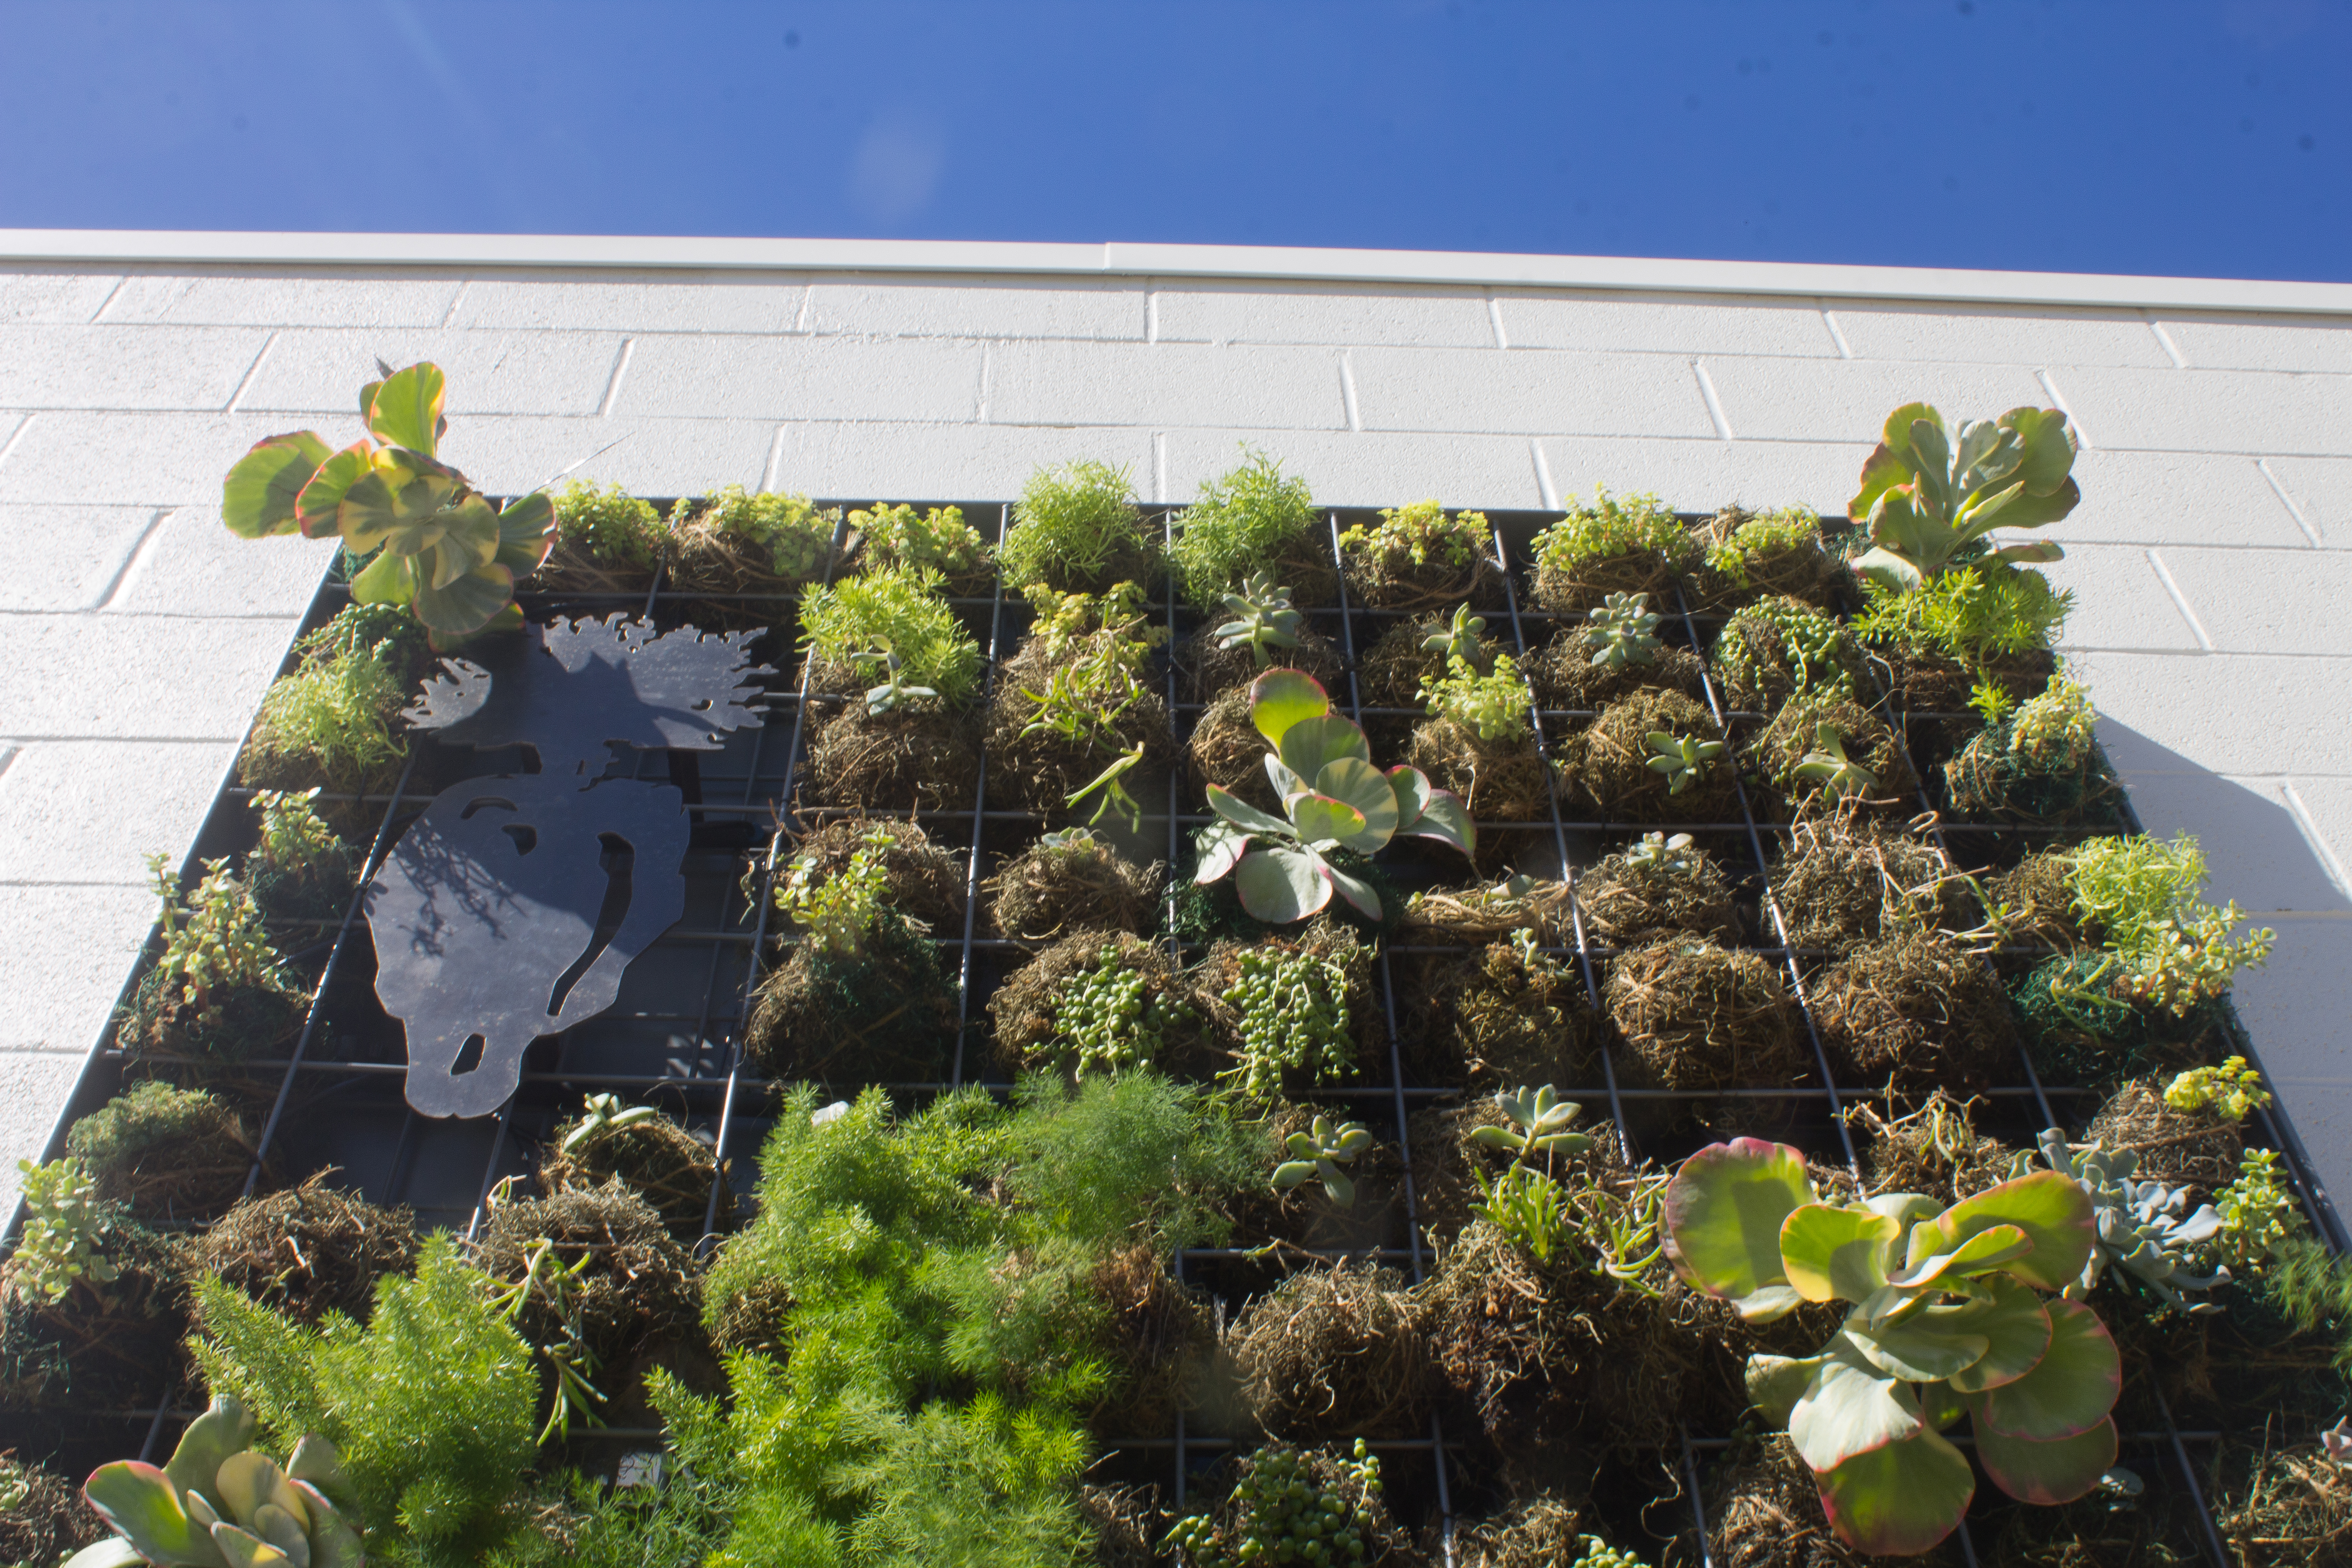 Baby Greens' living plant mural